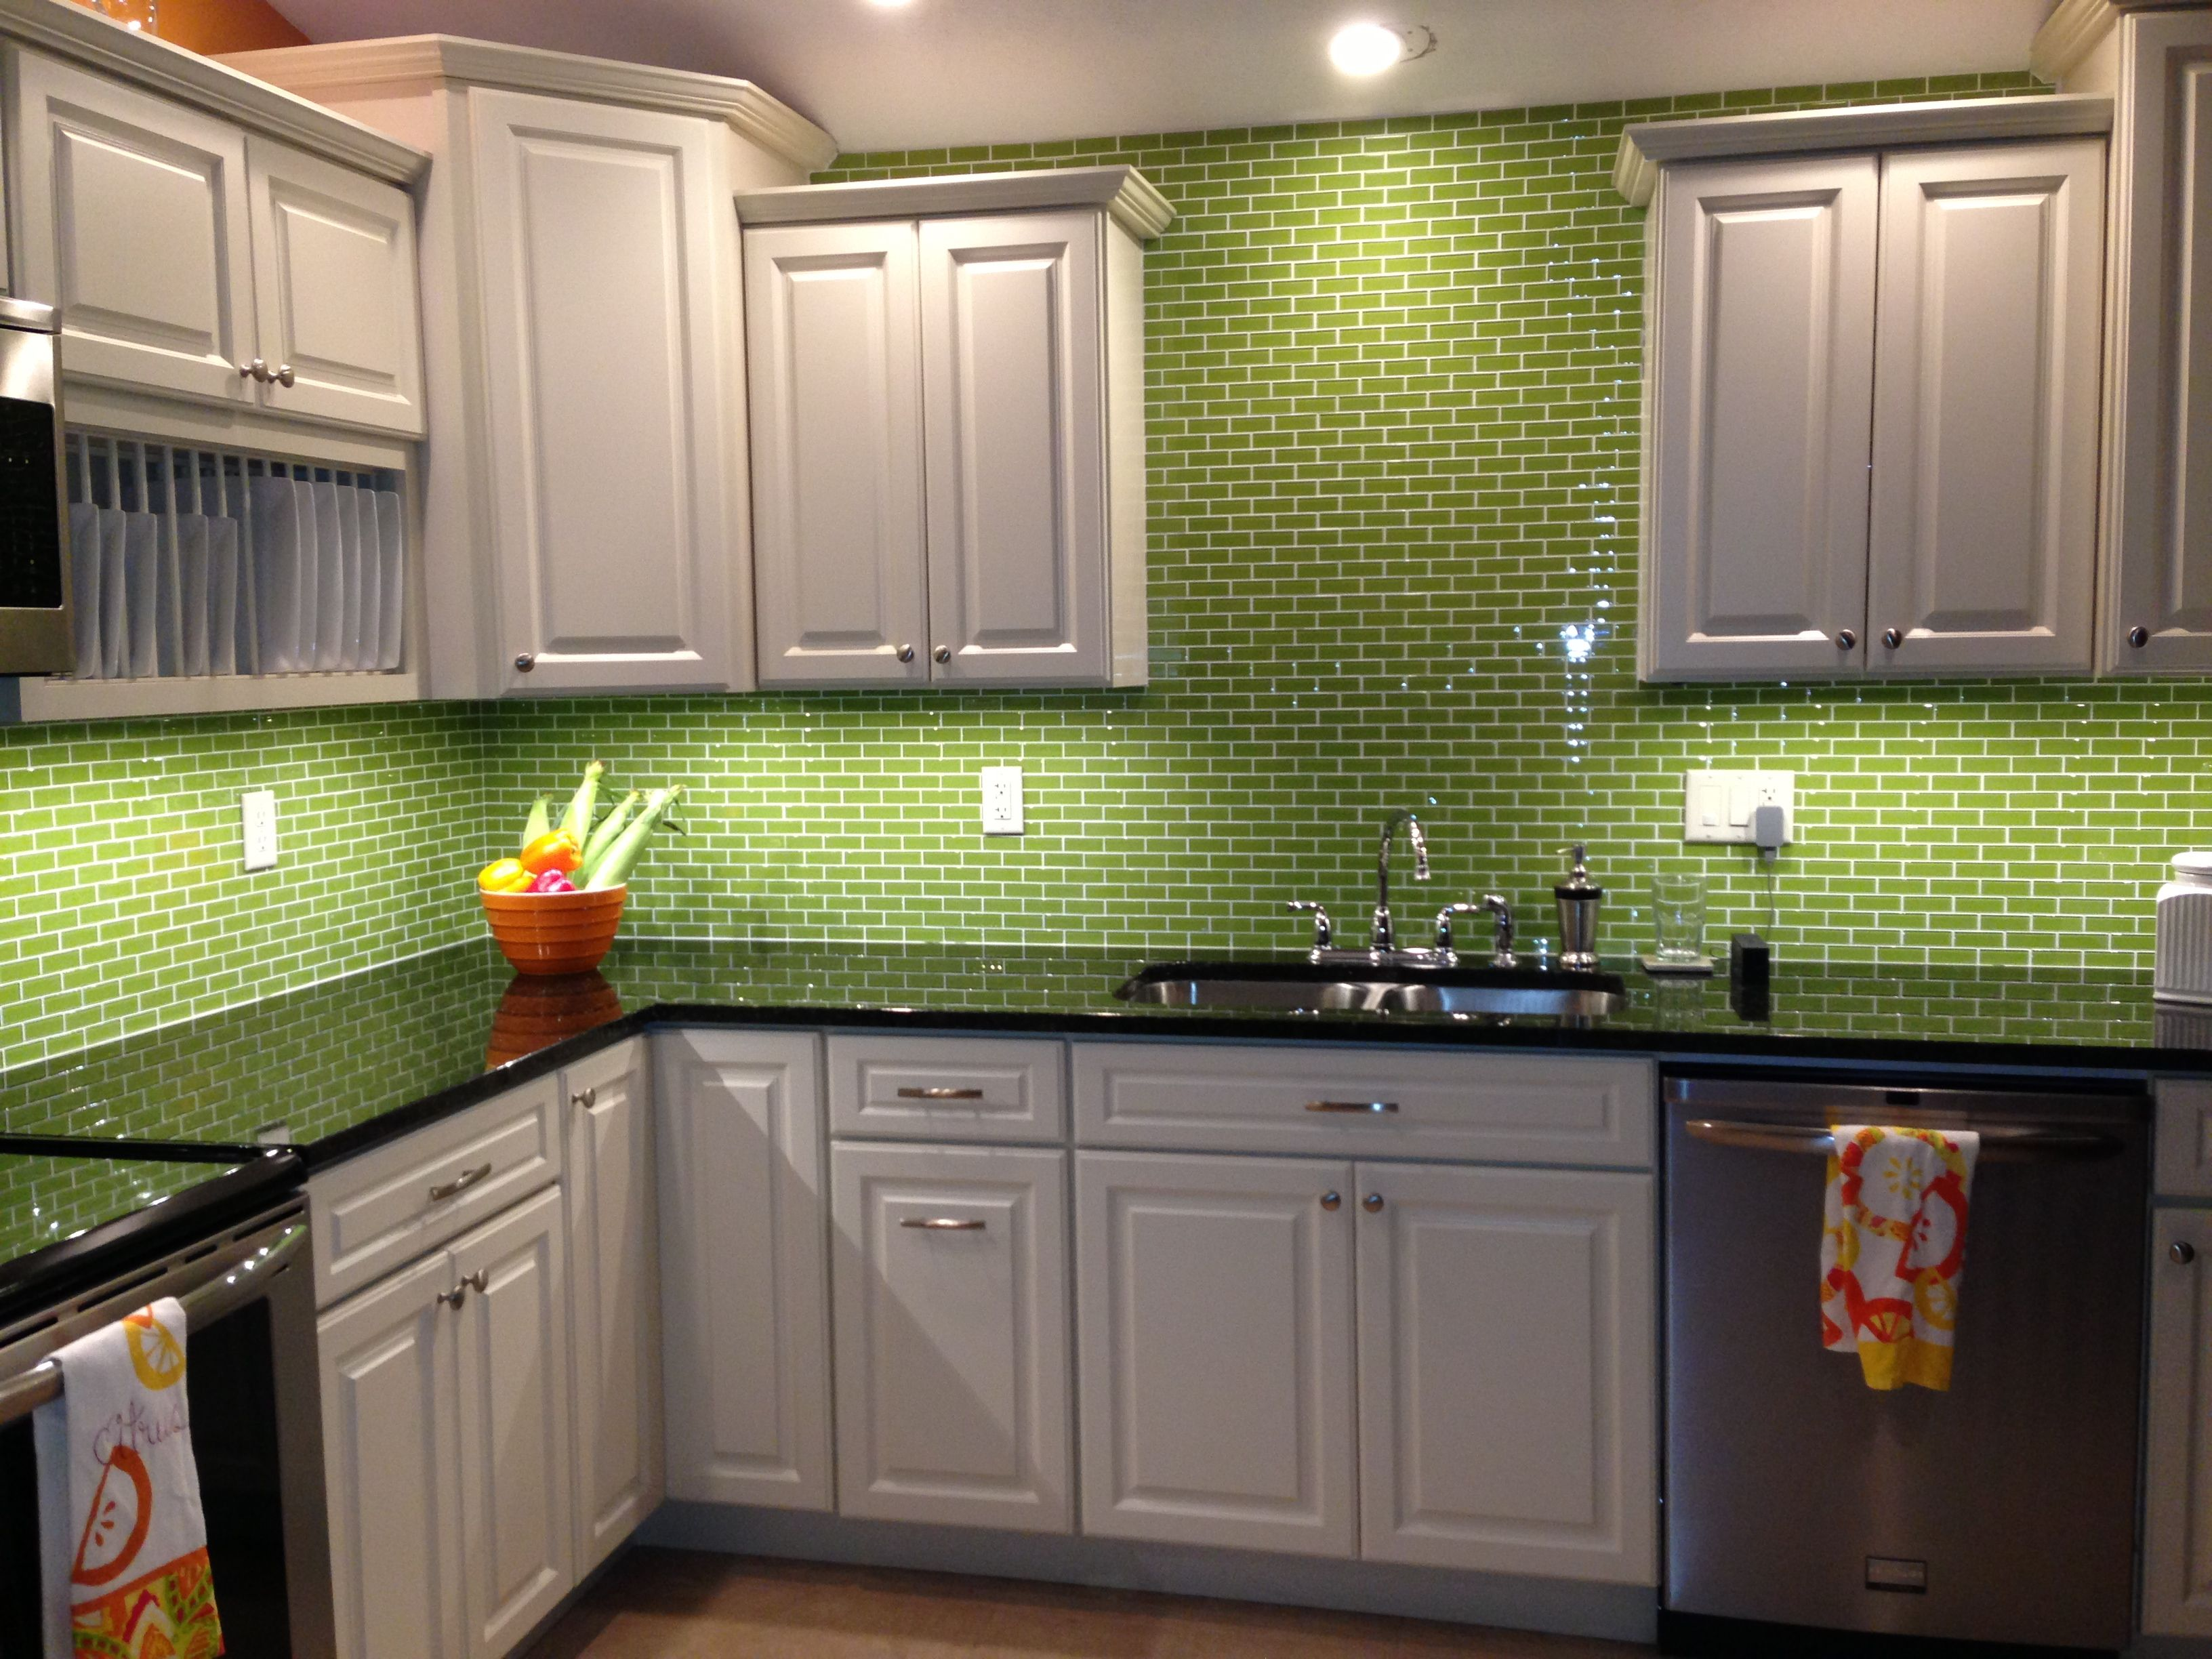 Uncategorized Green Kitchen Tile Backsplash lime green glass subway tile backsplash kitchen ideas kitchen